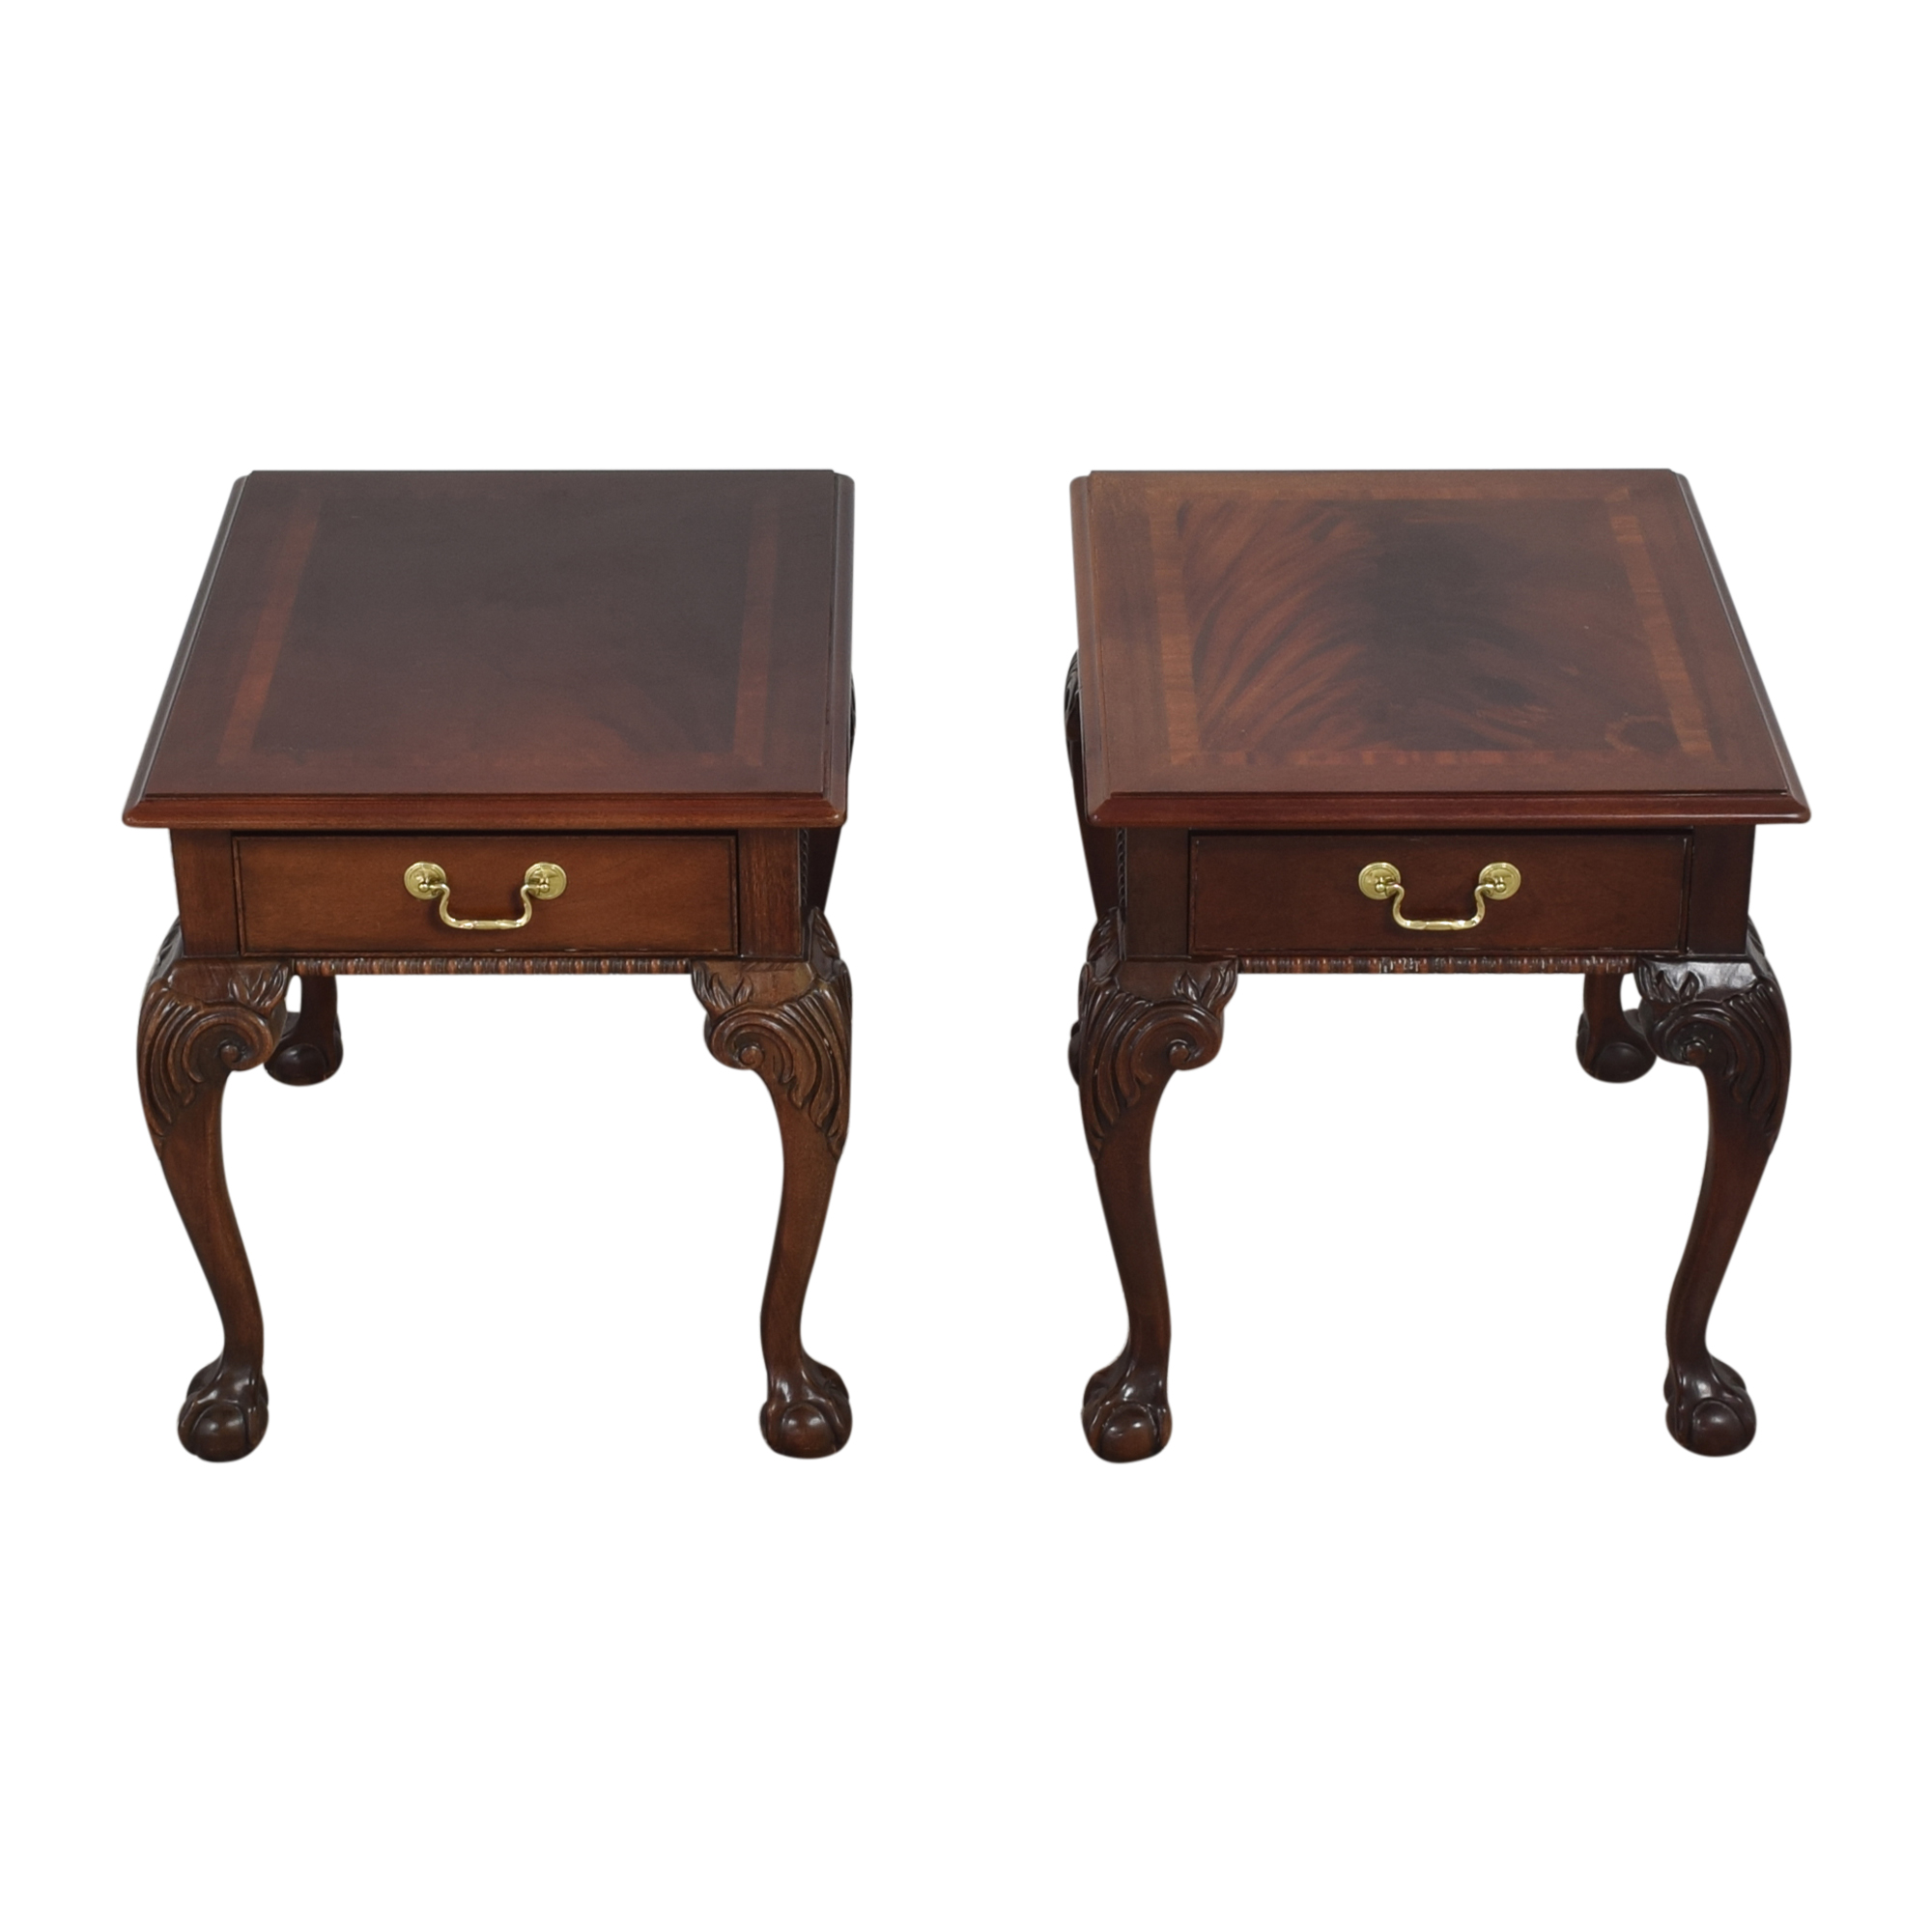 Thomasville Thomasville Queen Anne-Style Clawfoot End Tables nj